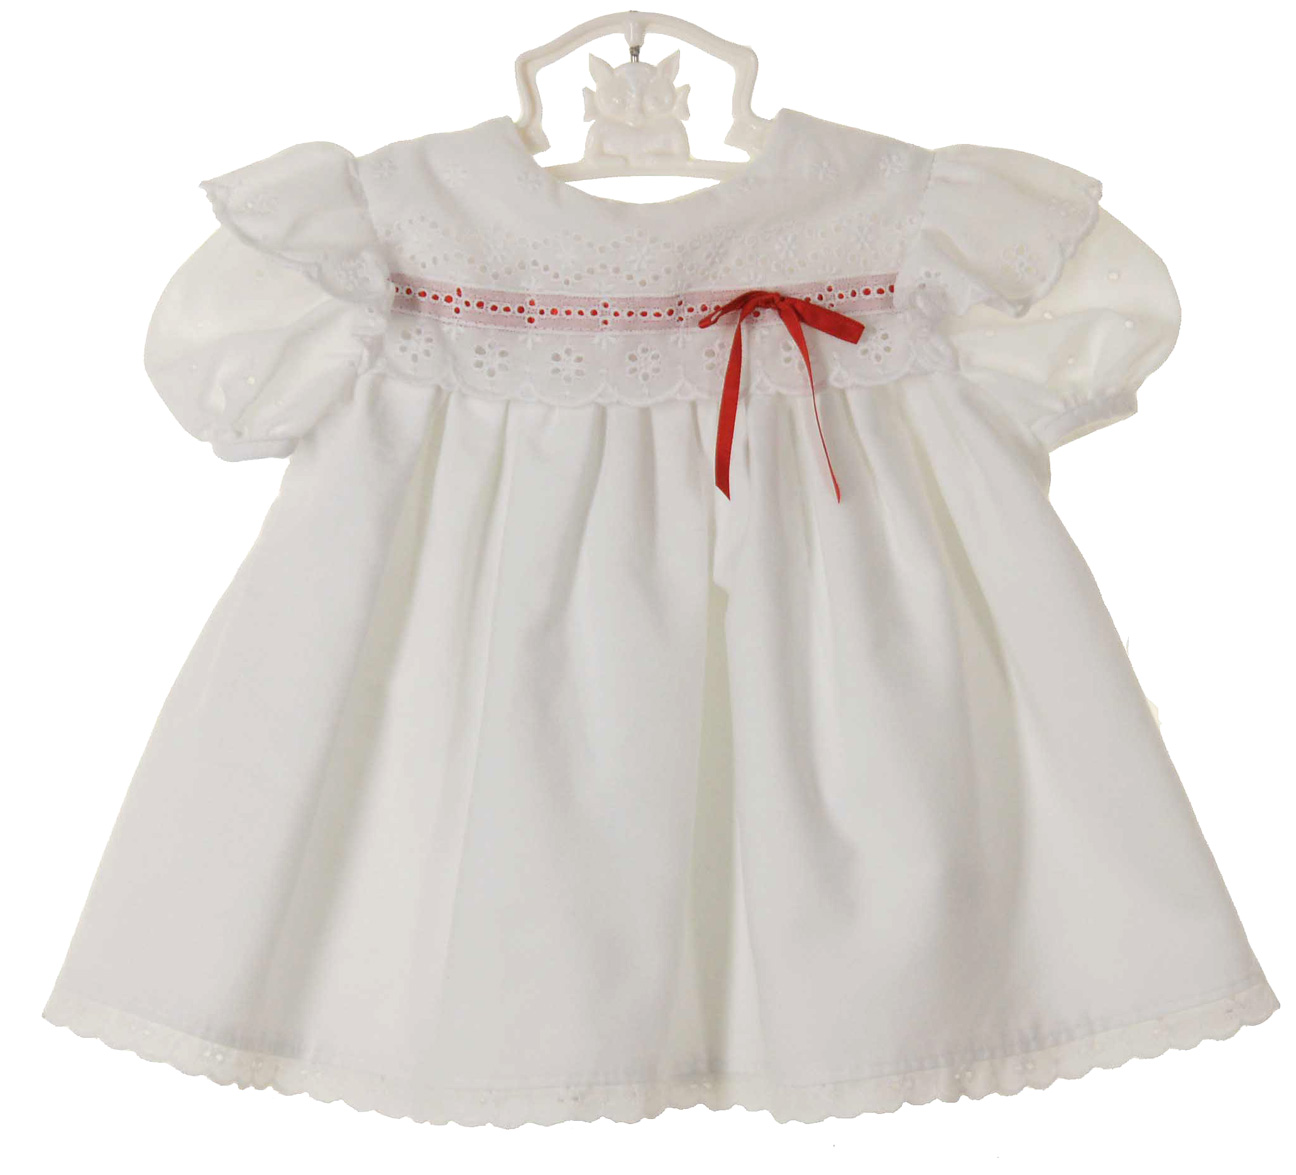 Polly Flinders white eyelet trimmed dress with red ribbon